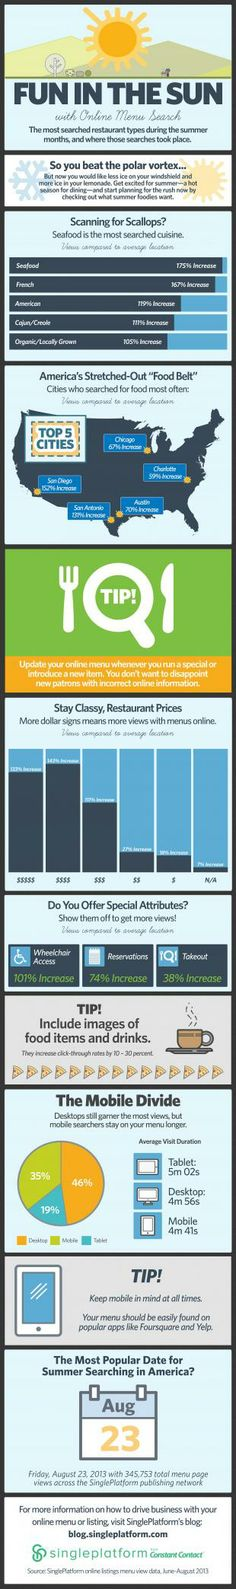 Online menu search infographic from Constant Contact. #infographic